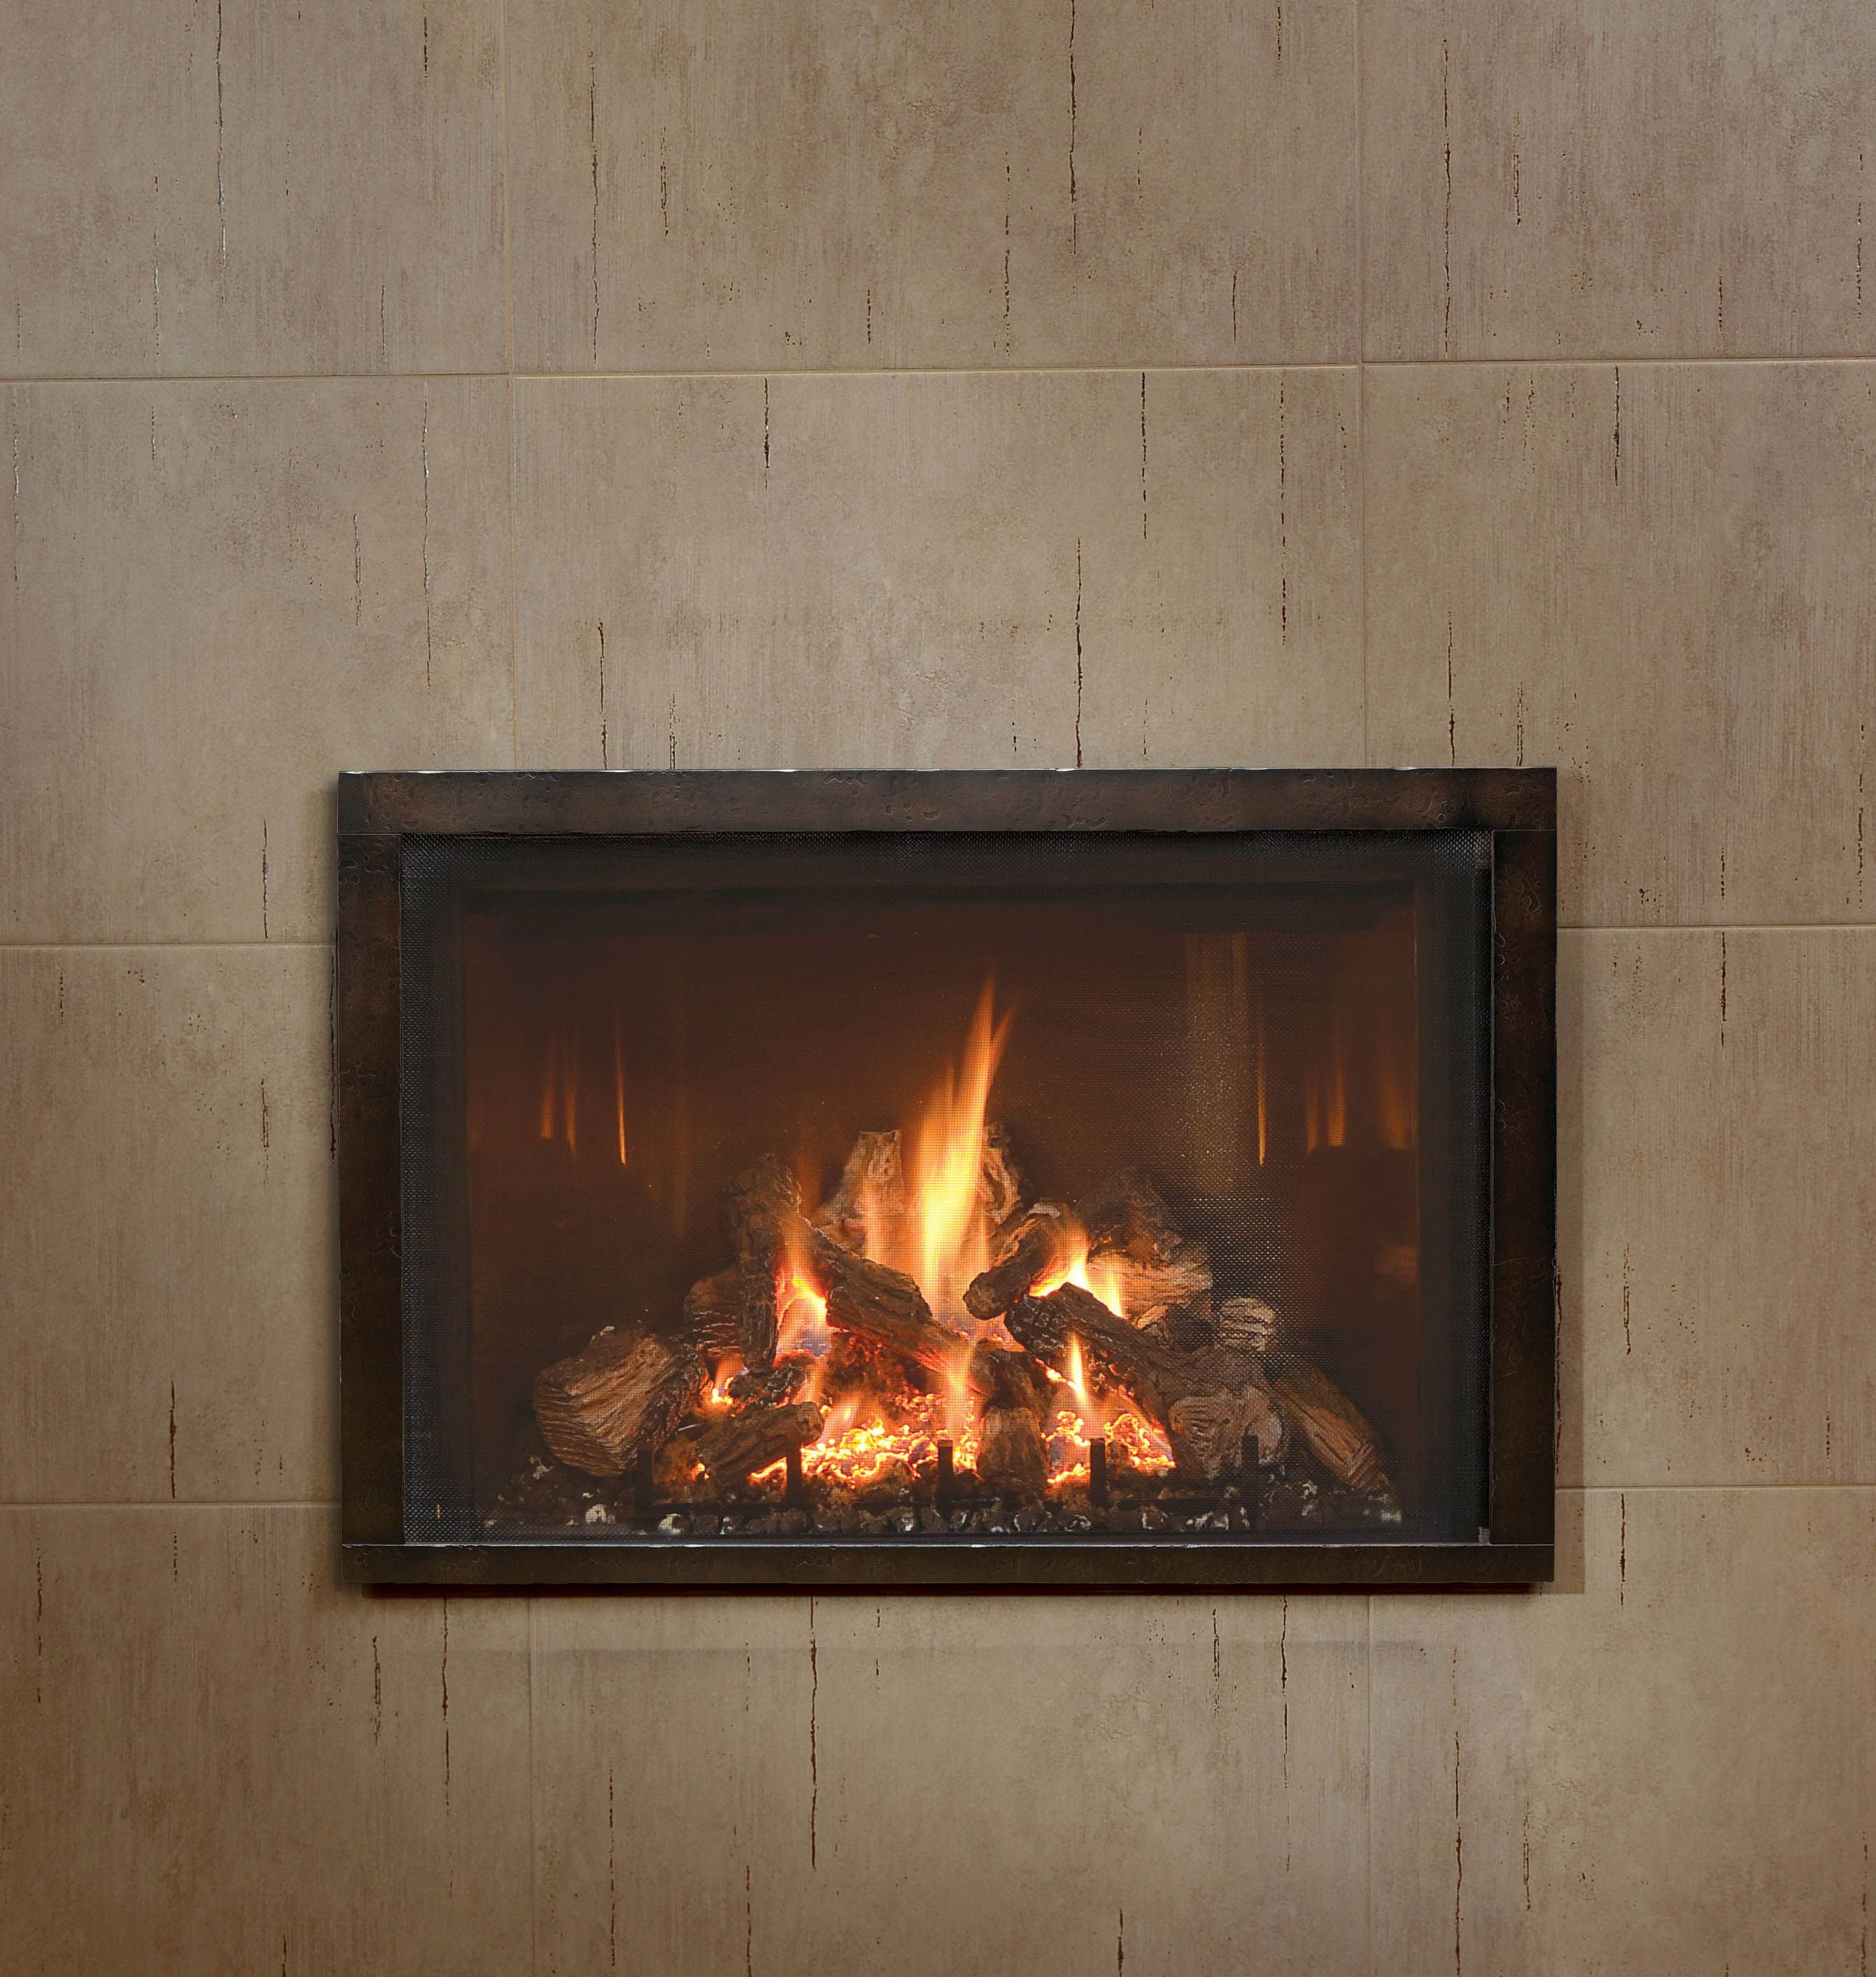 mendota ml47 gas fireplace fireplaces pinterest gas fireplace